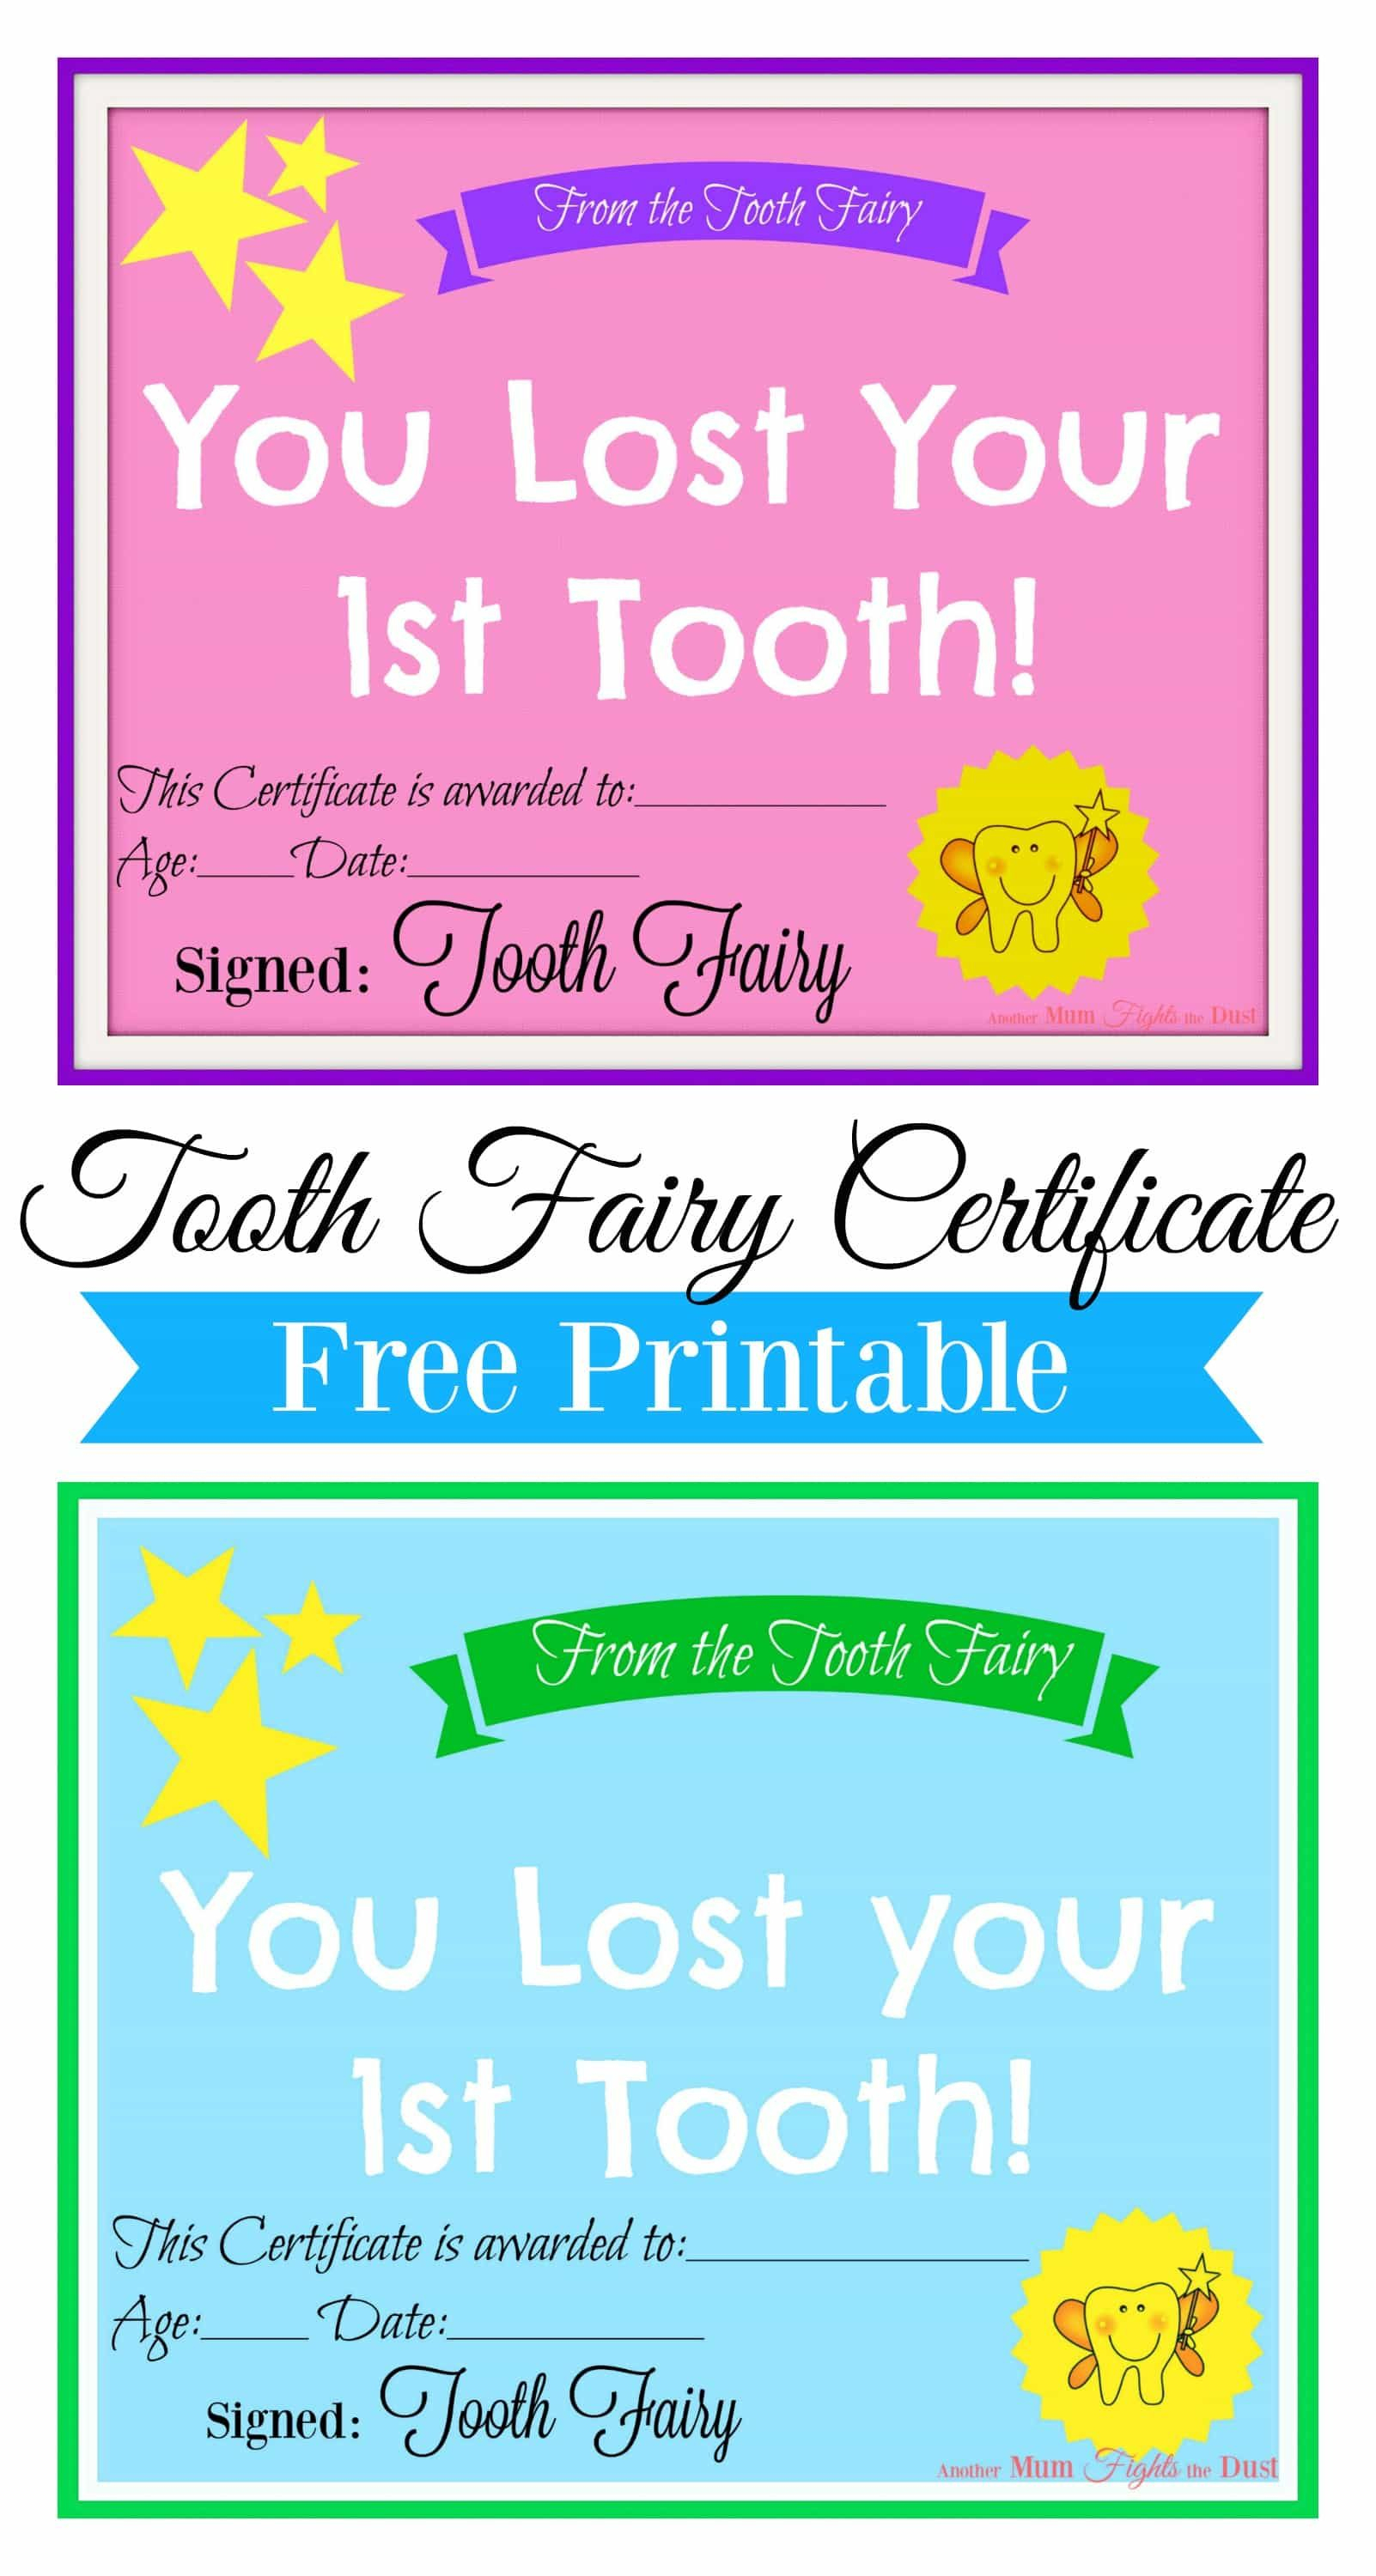 Free Printable Tooth Fairy Certificate | Tooth Fairy Ideas | Tooth - Free Printable Tooth Fairy Certificate